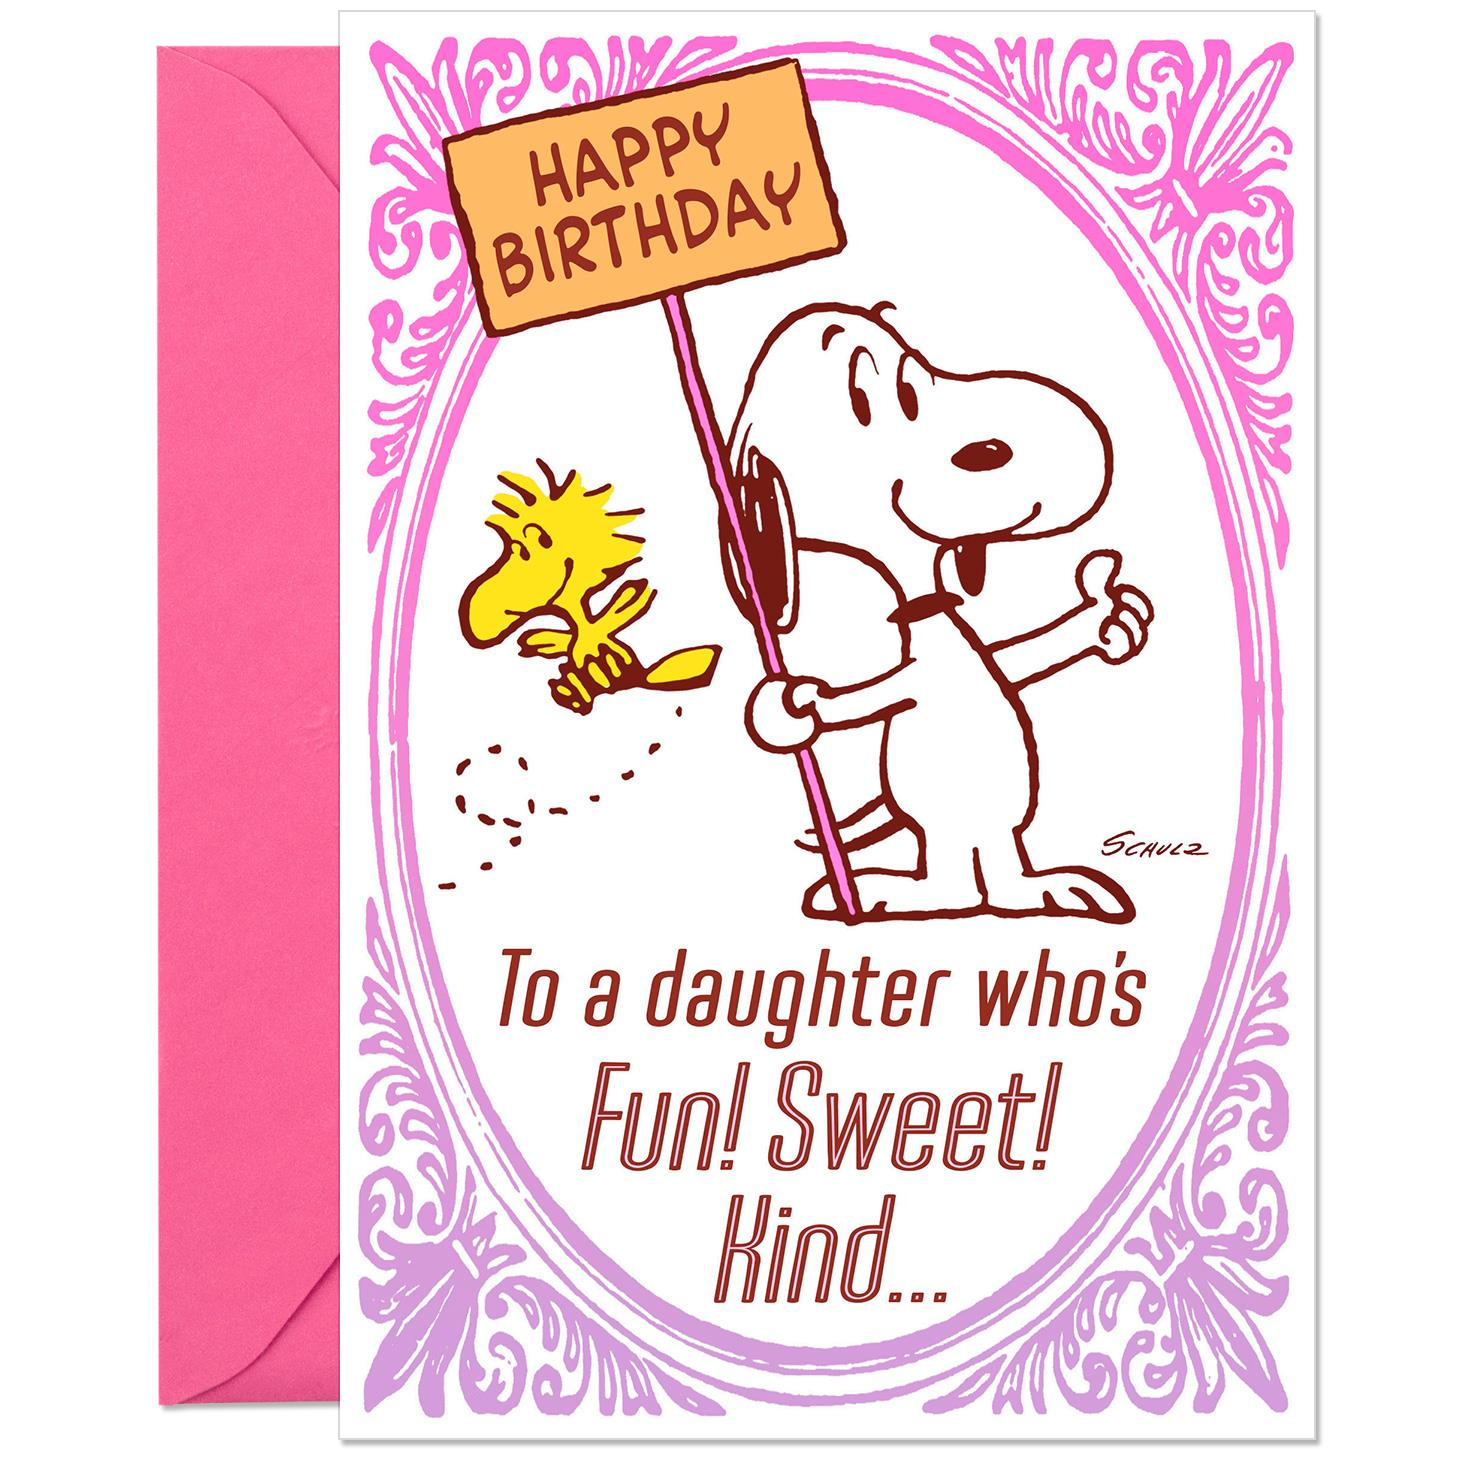 Peanuts Snoopy And Woodstock Sweet Daughter Funny Birthday Card